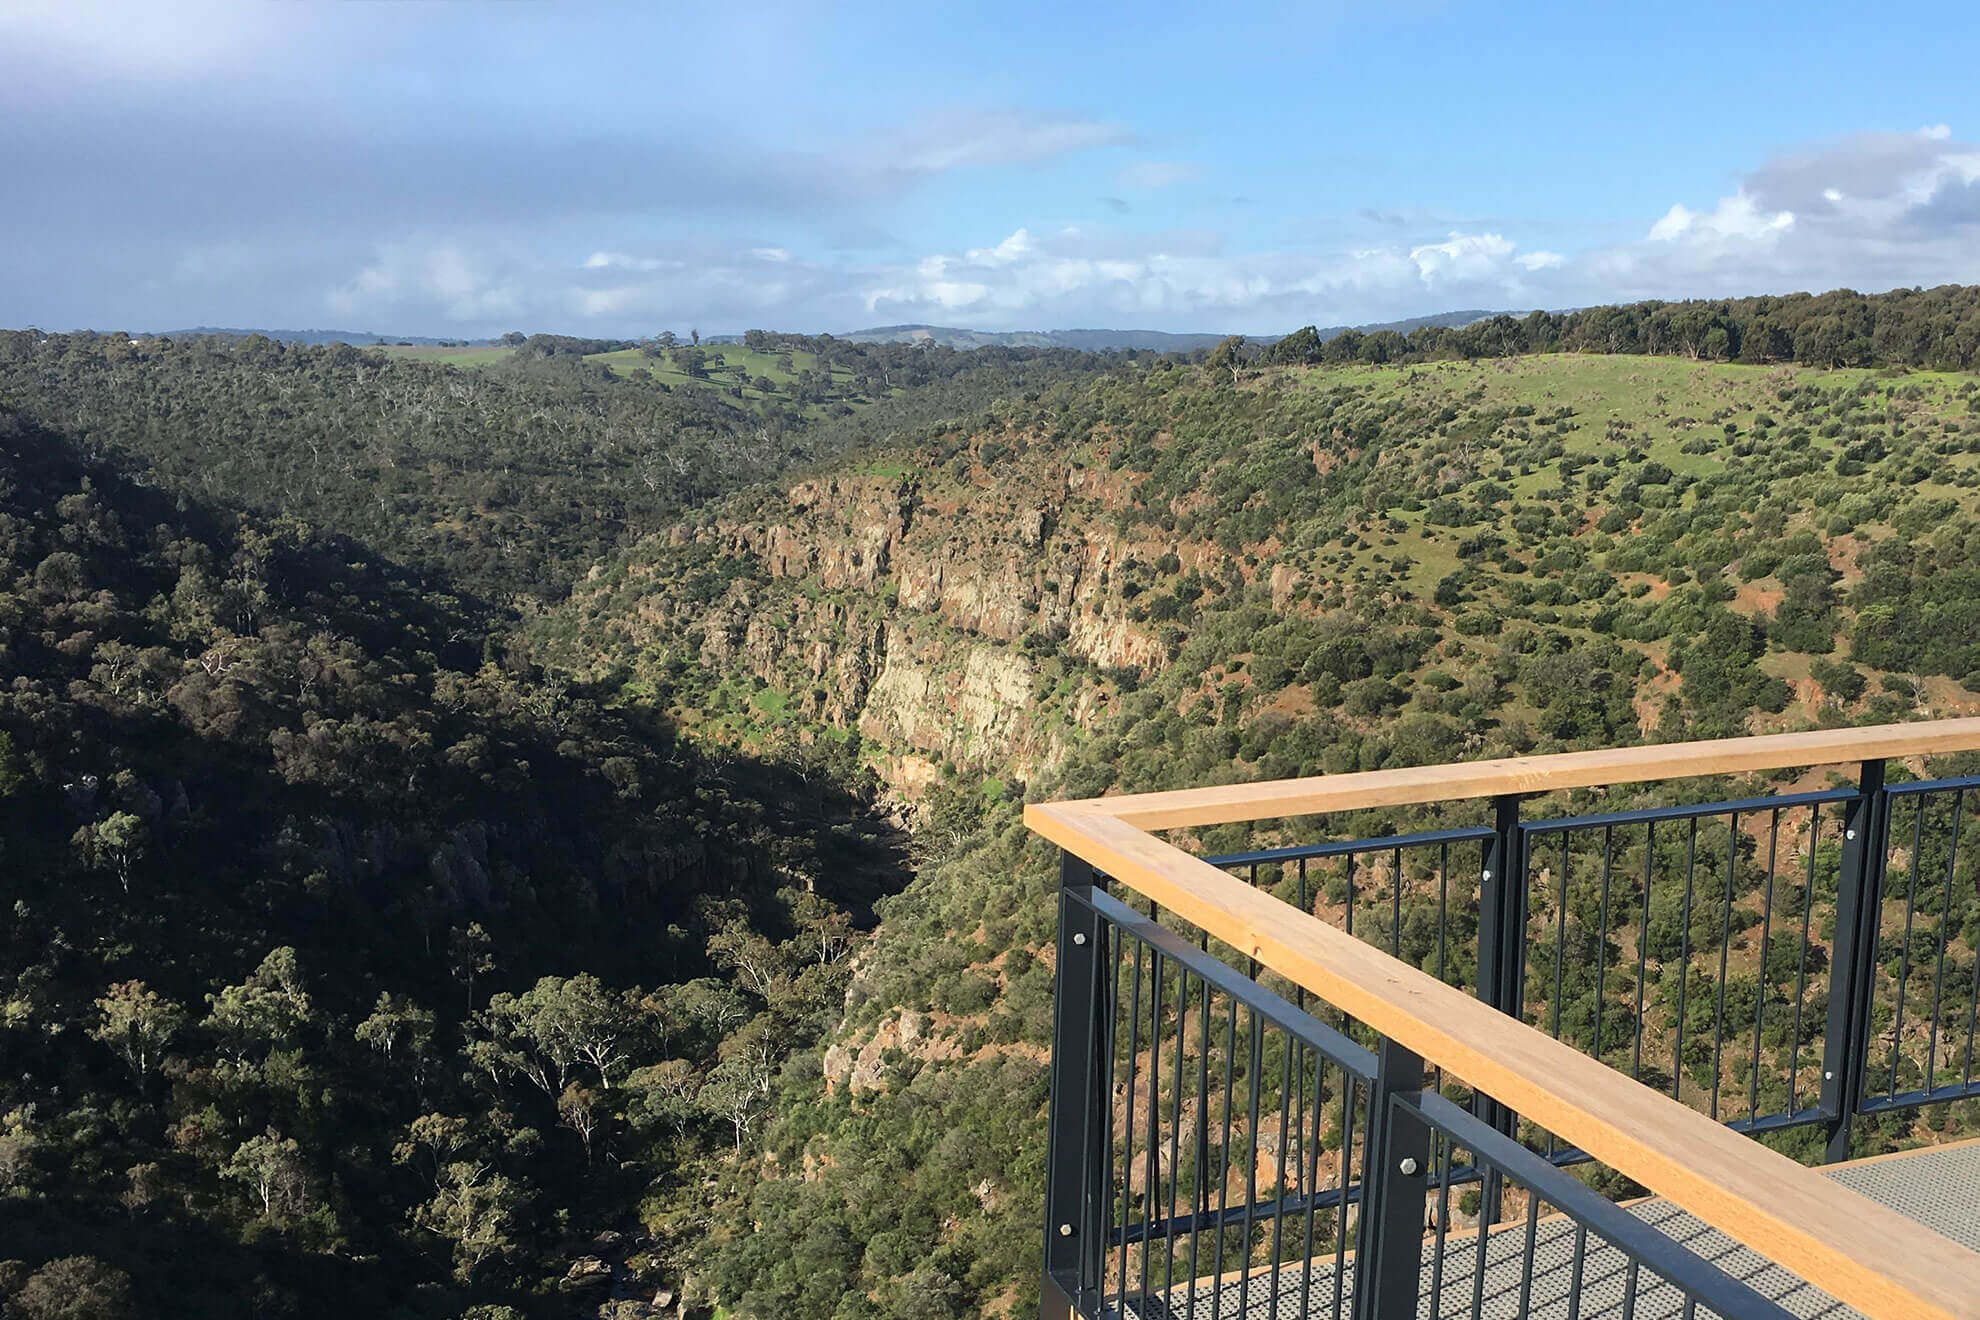 Onkaparinga Gorge with our Concierge Service McLaren Unveiled